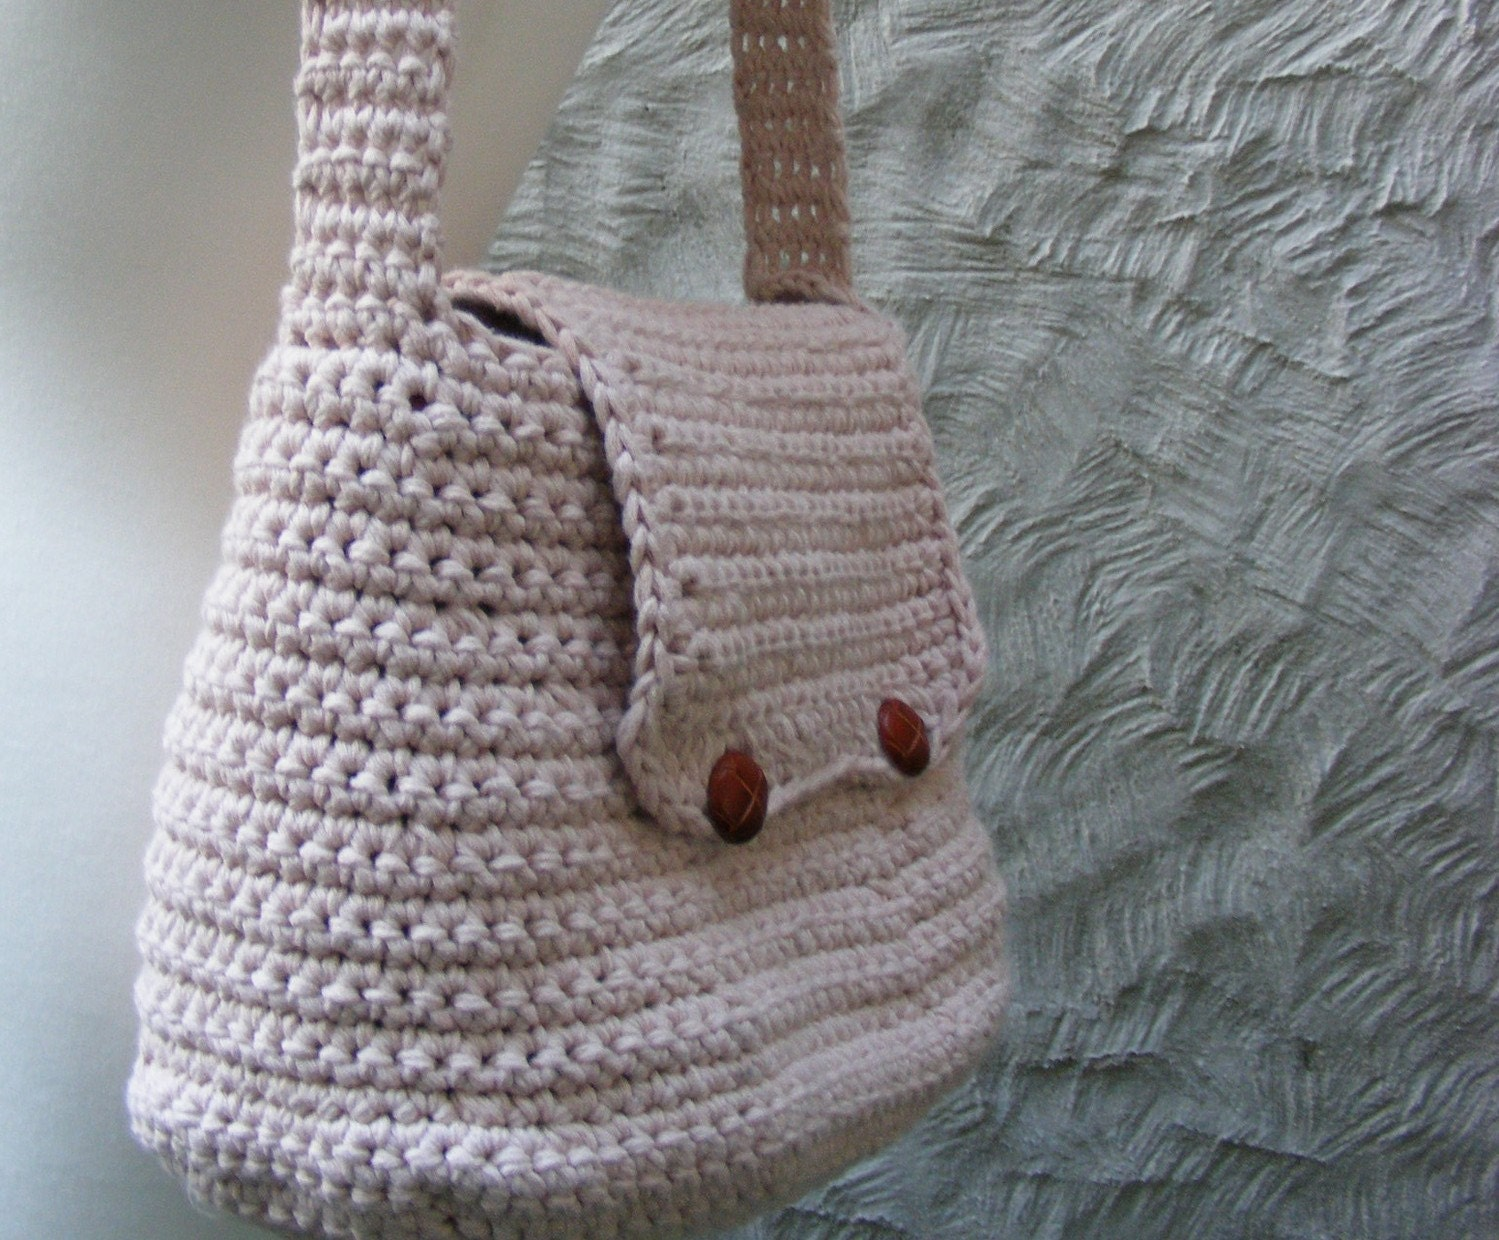 Crochet Patterns Purses : EASY CROCHET PURSE PATTERNS How To Crochet